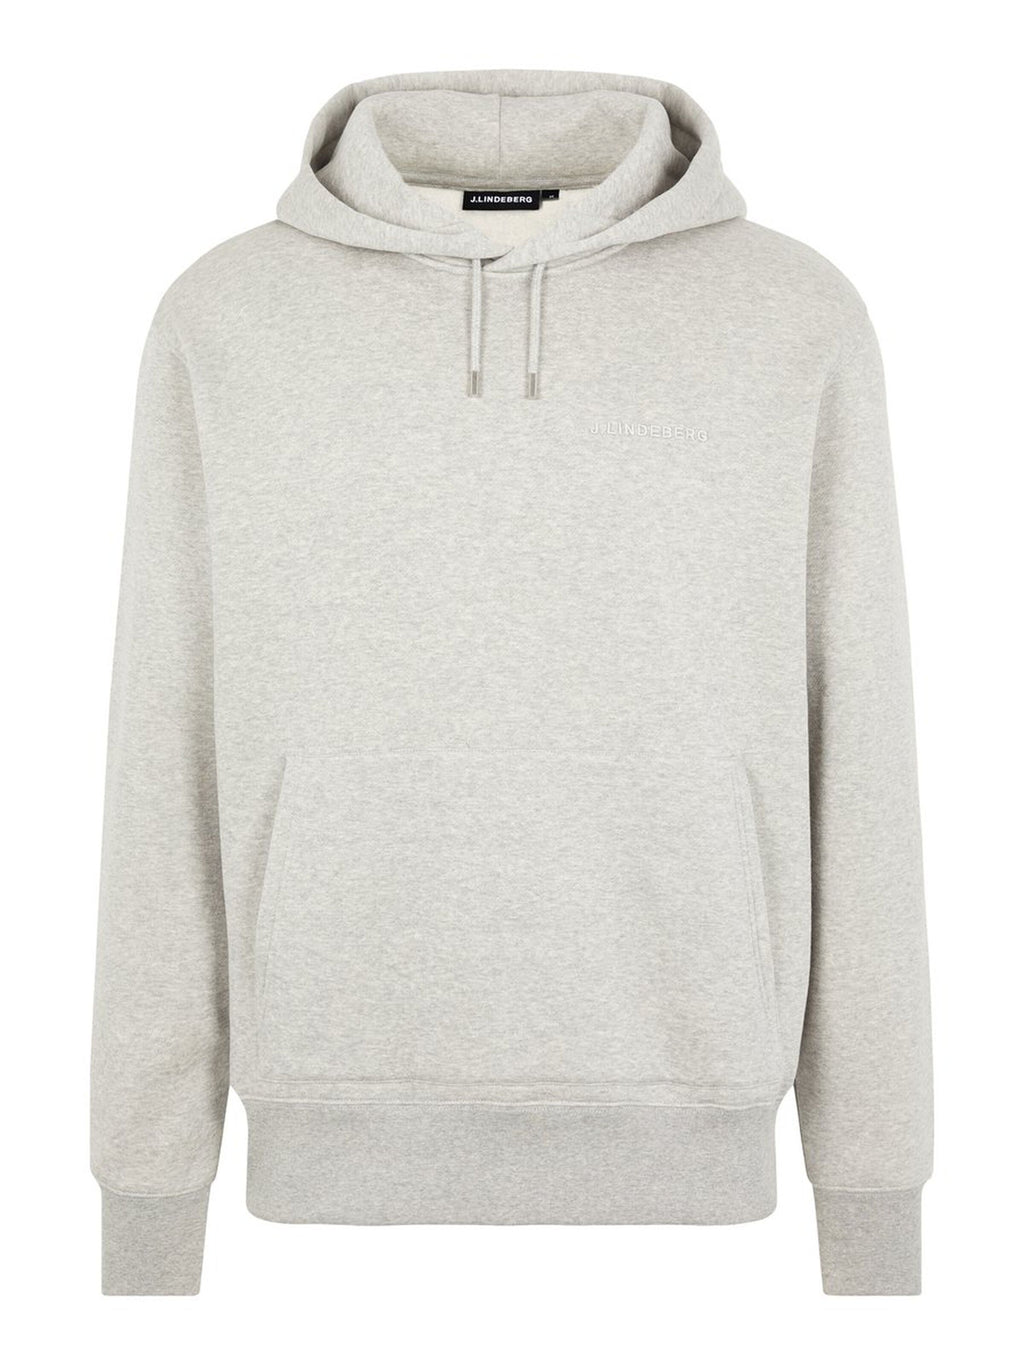 Chip Stone Grey Pocket Hoodie